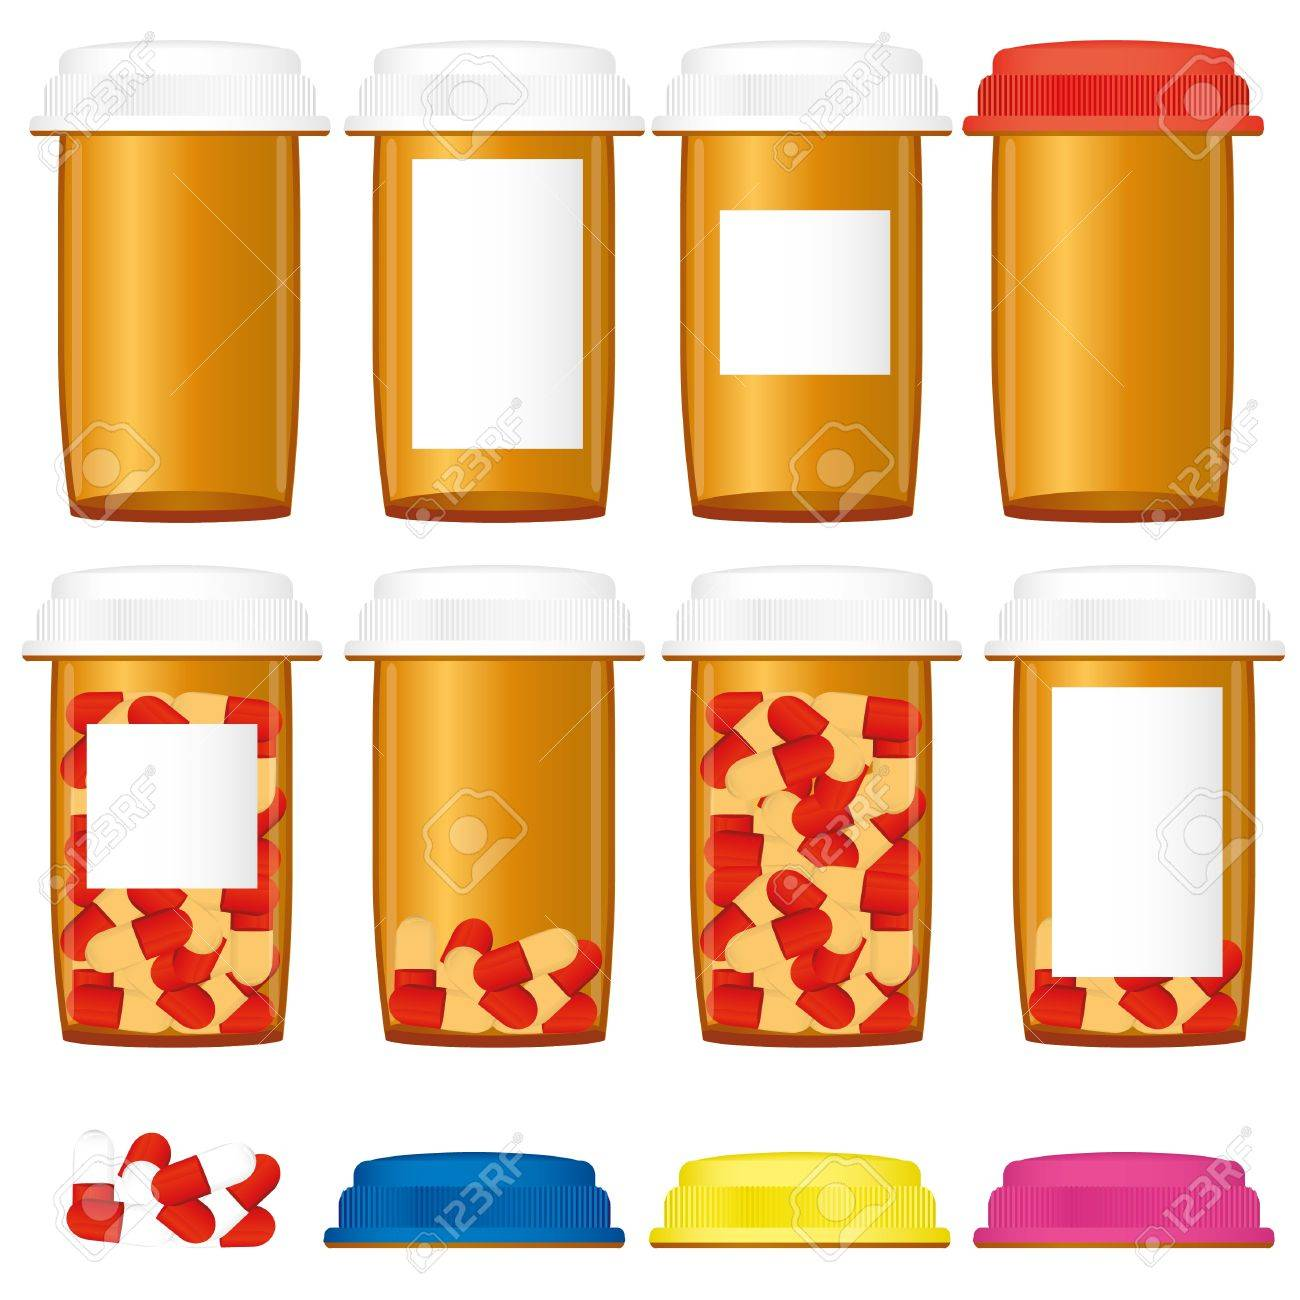 Set of prescription medicine bottles with colorful caps isolated on a white background, vector illustration Stock Vector - 9249697